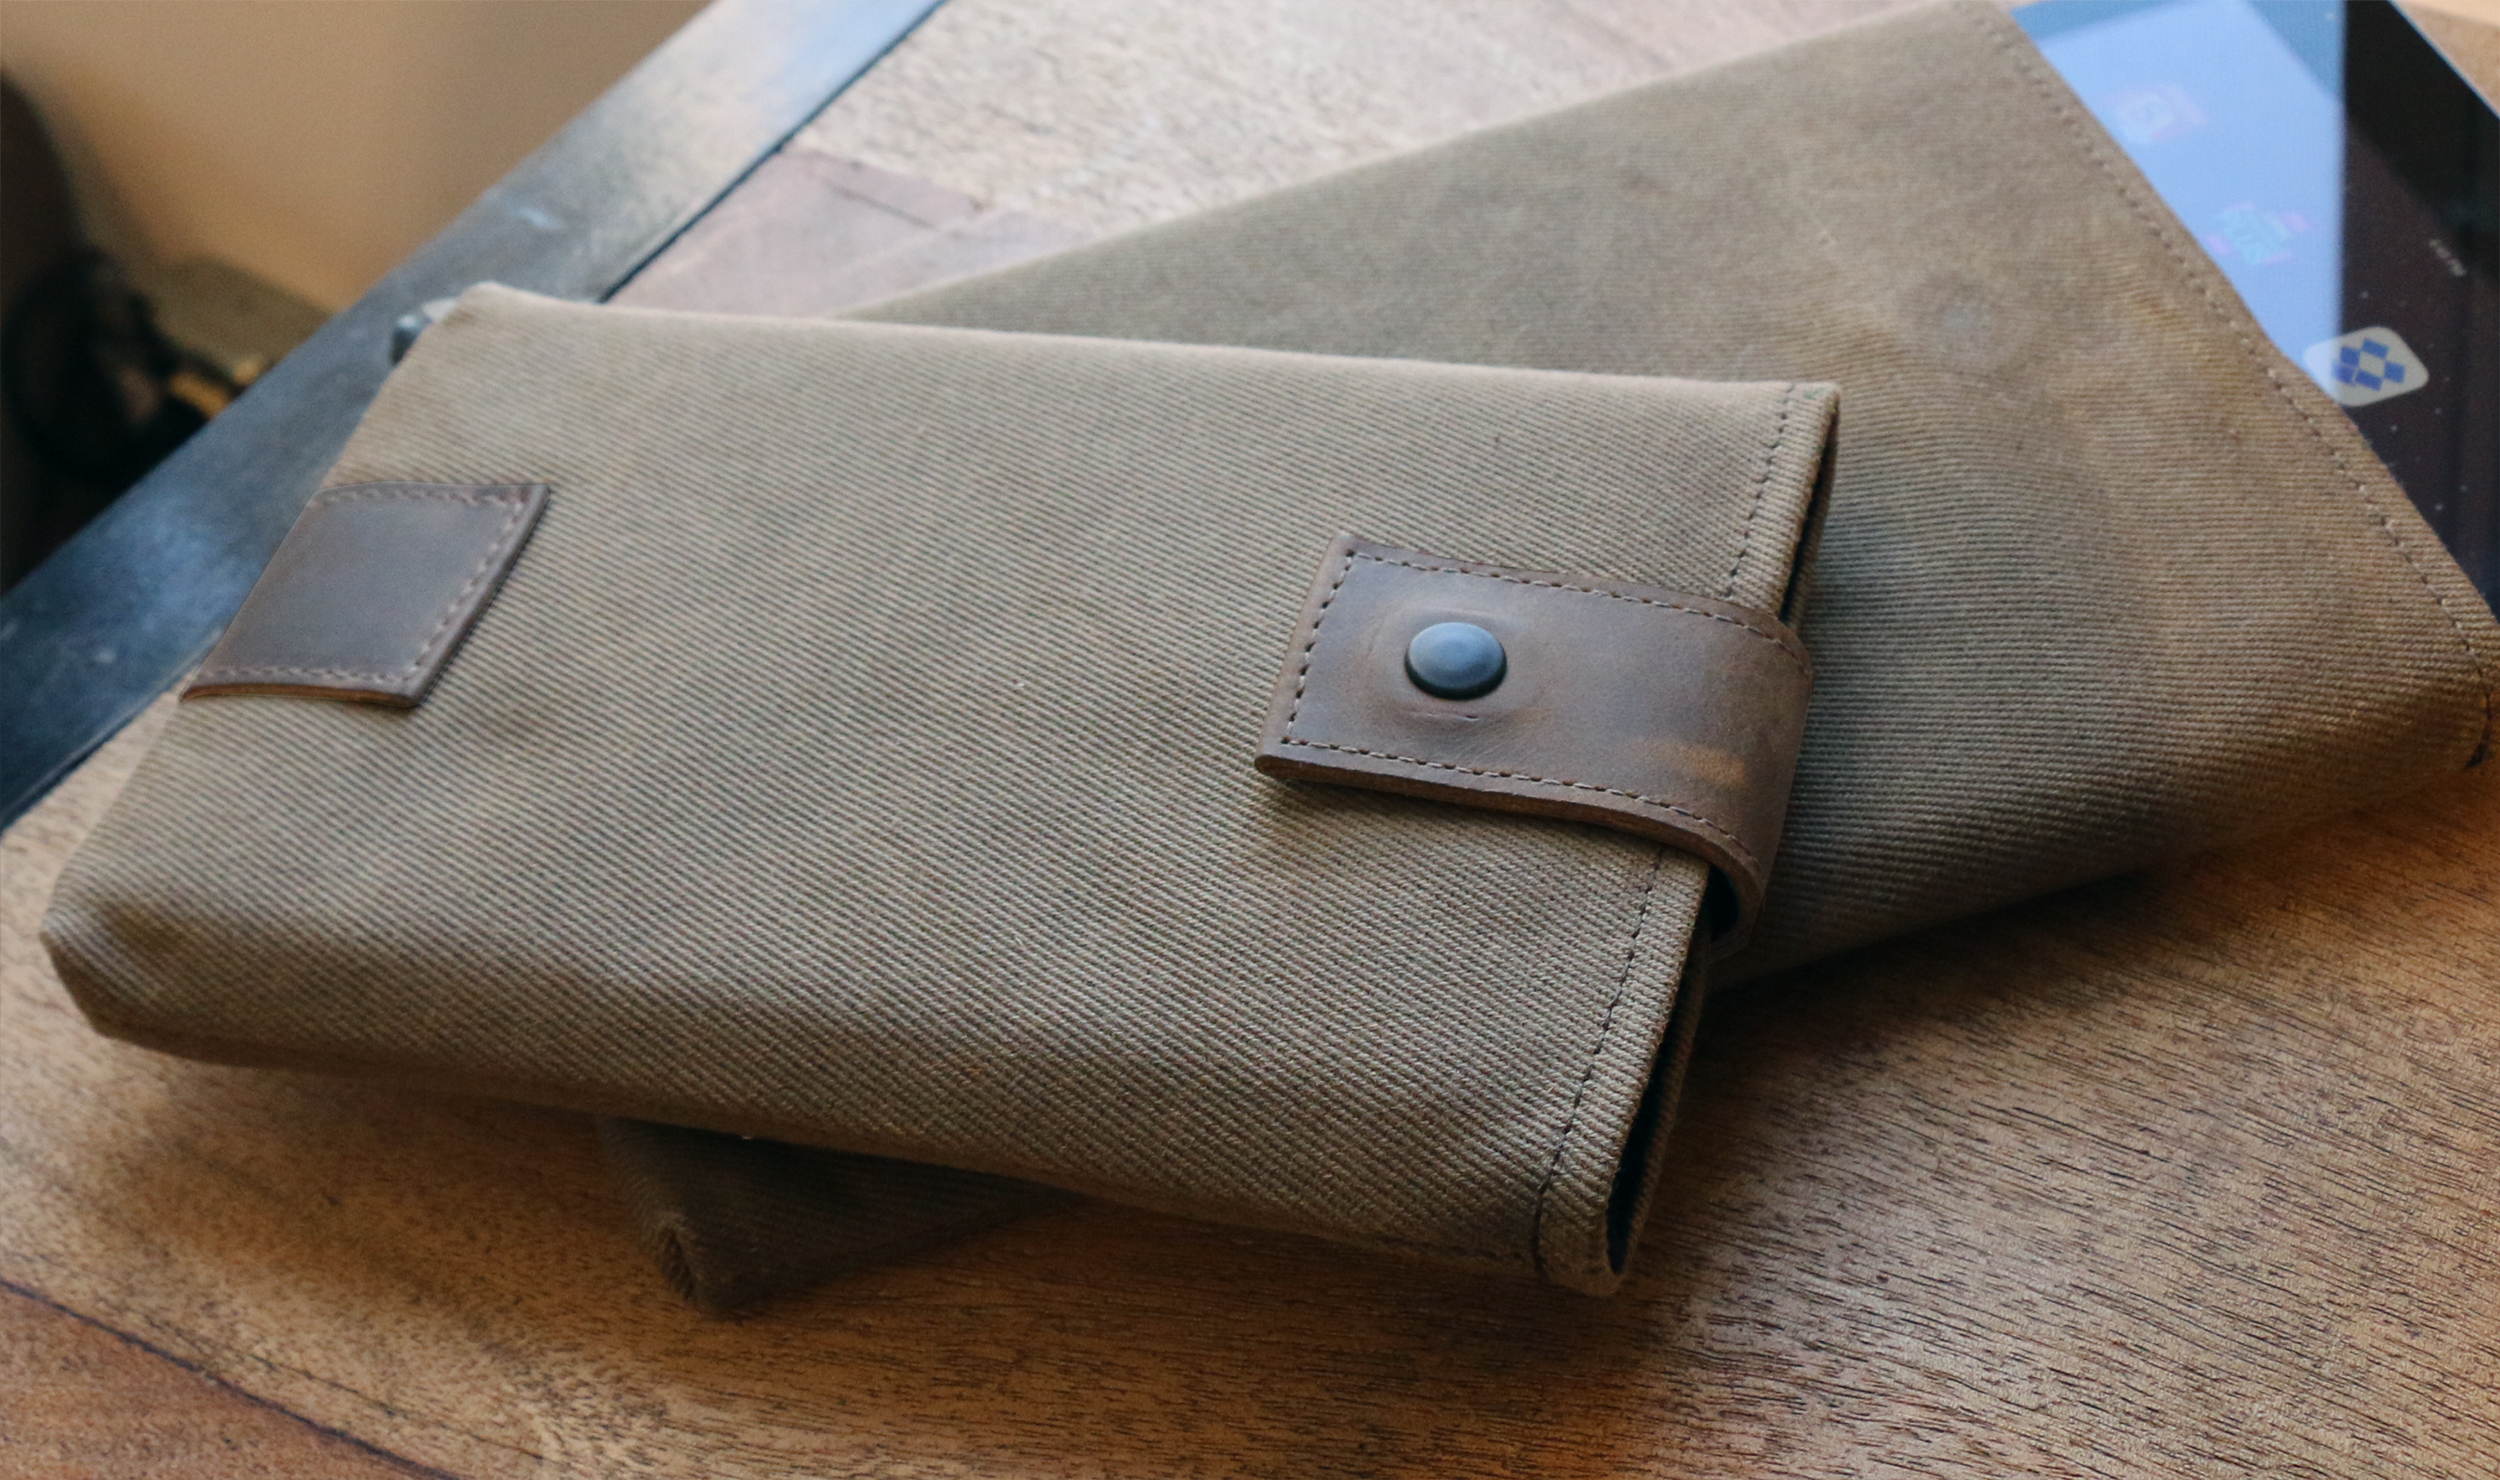 Waterfield Unveils Sporty Outback Ipad Slip Case For Apple